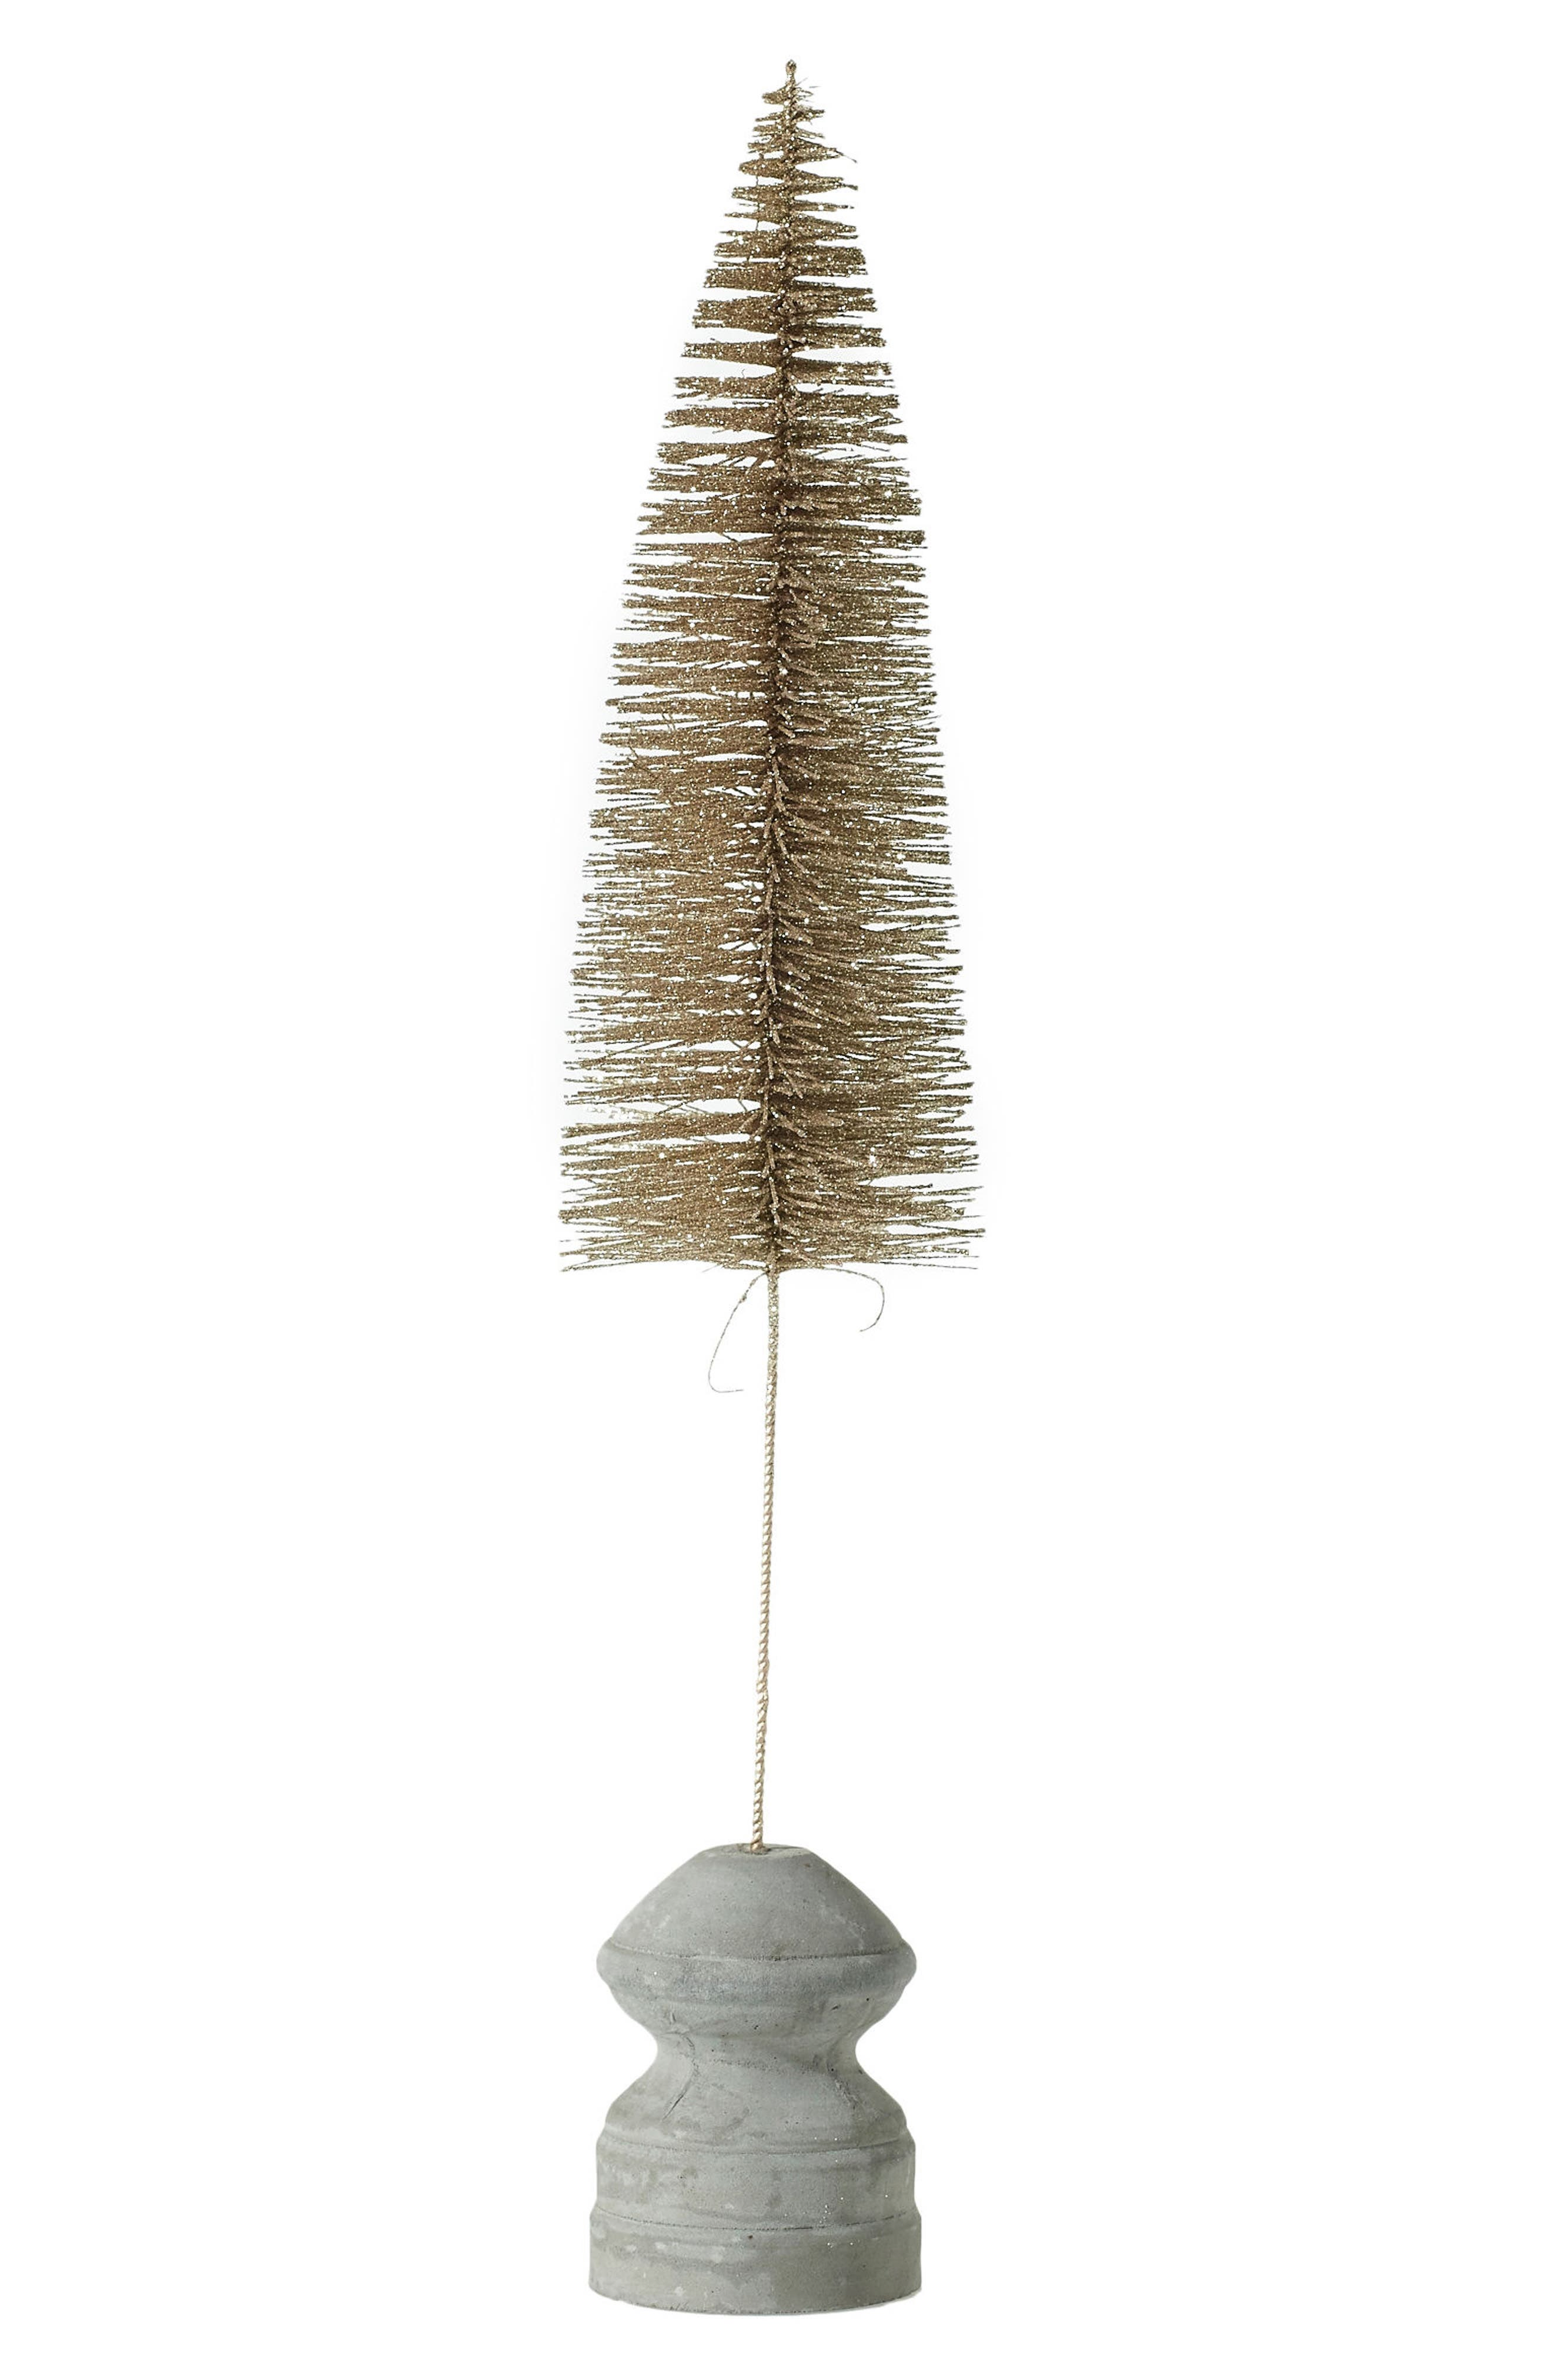 Alternate Image 1 Selected - Accent Decor Glitter Bottle Brush Tree